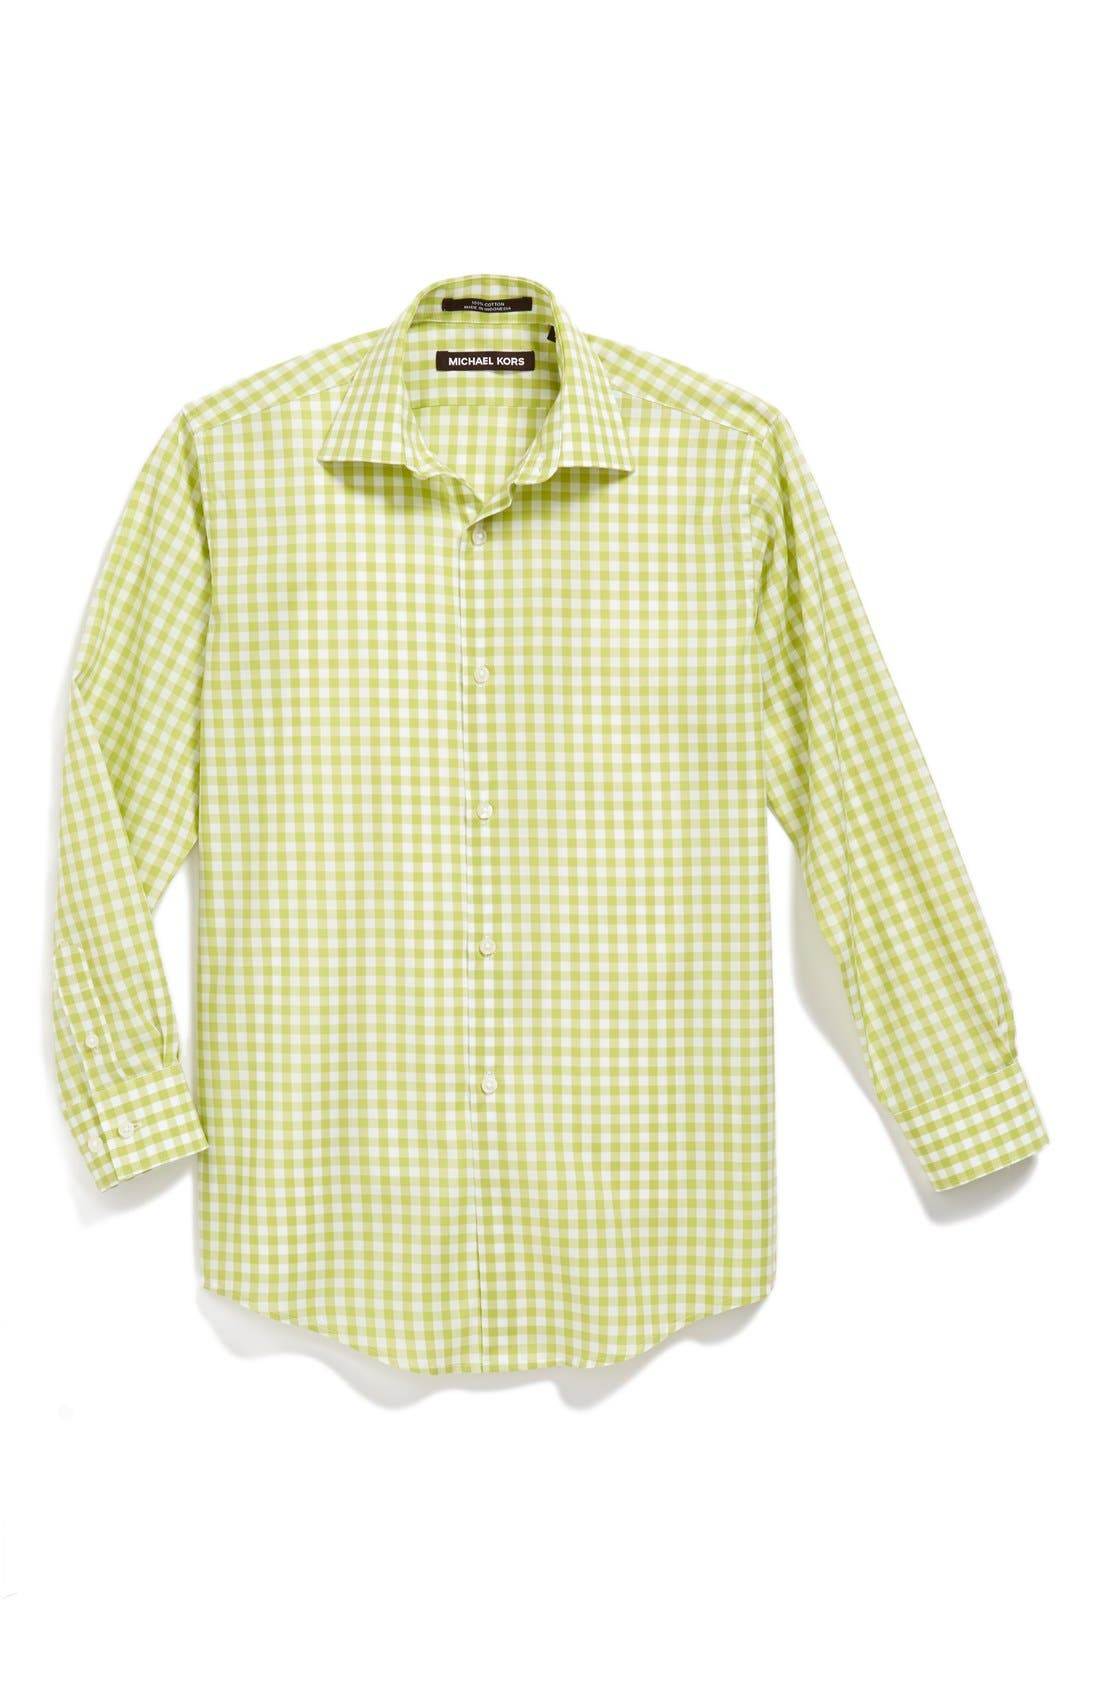 Alternate Image 1 Selected - Michael Kors Gingham Dress Shirt (Big Boys)